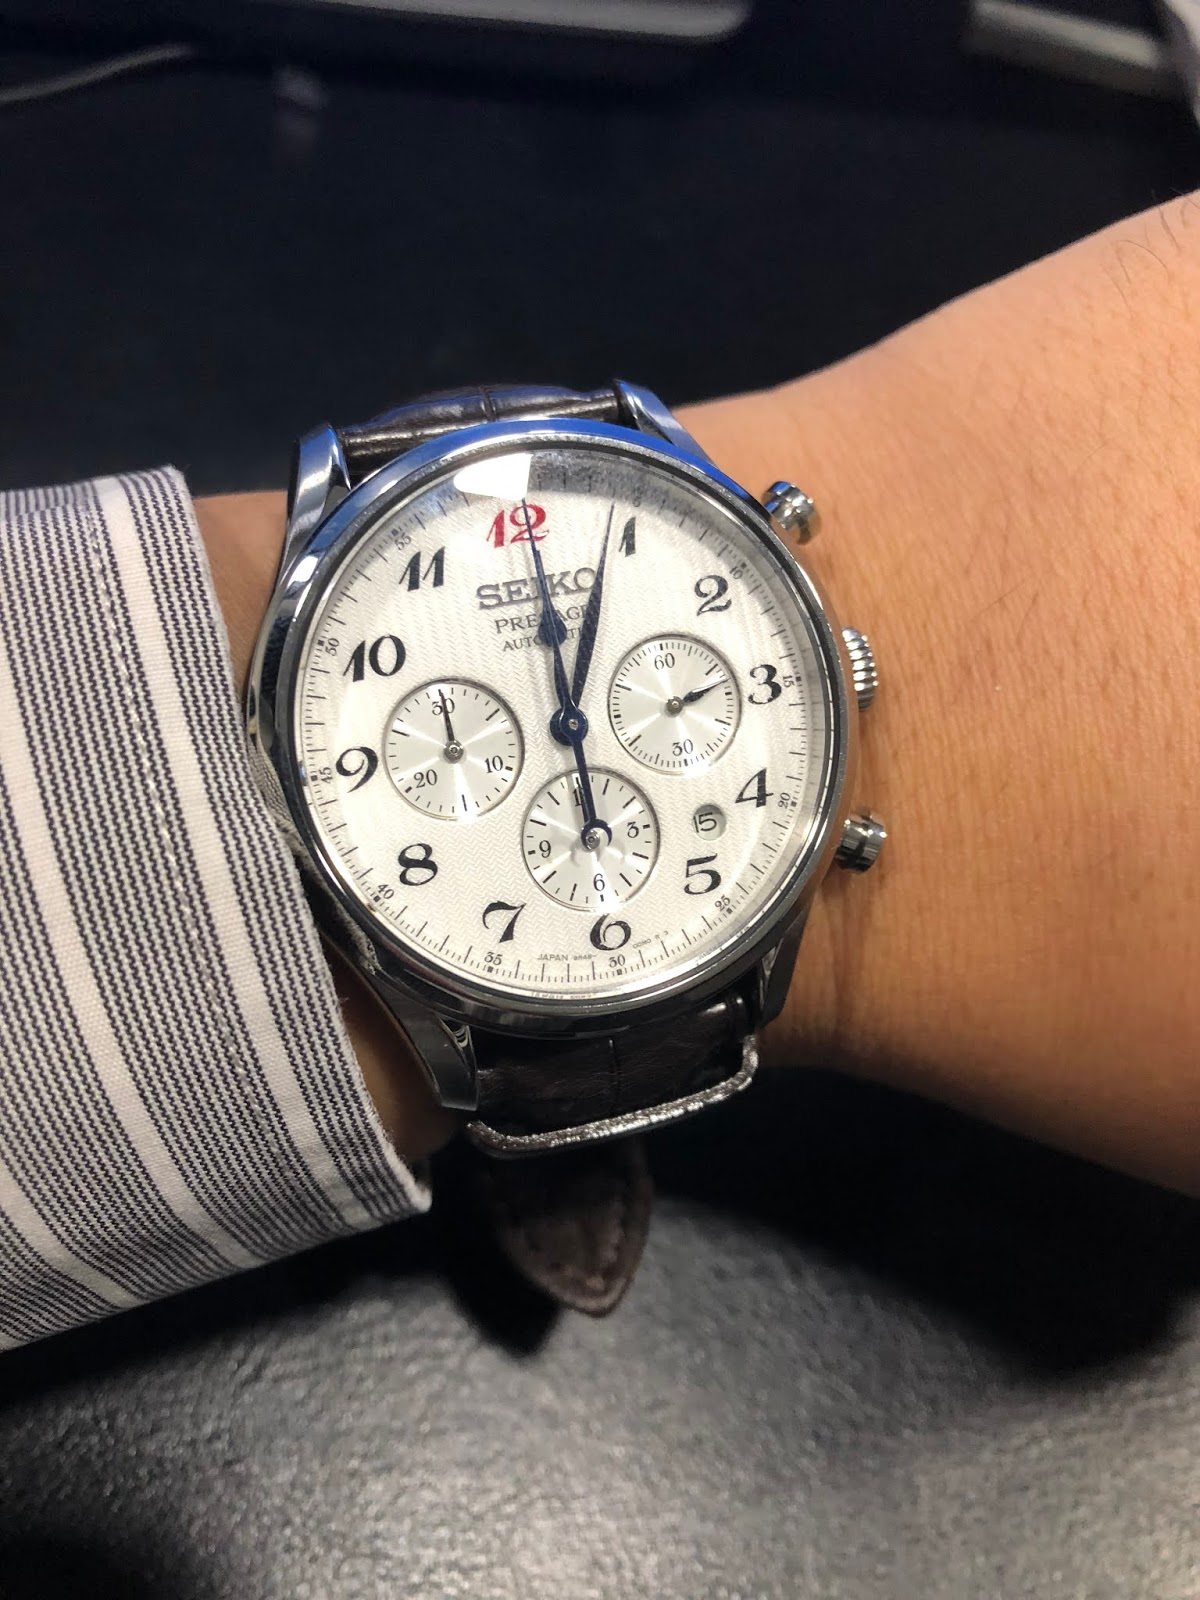 My Eastern Watch Collection: Seiko Presage Chronograph